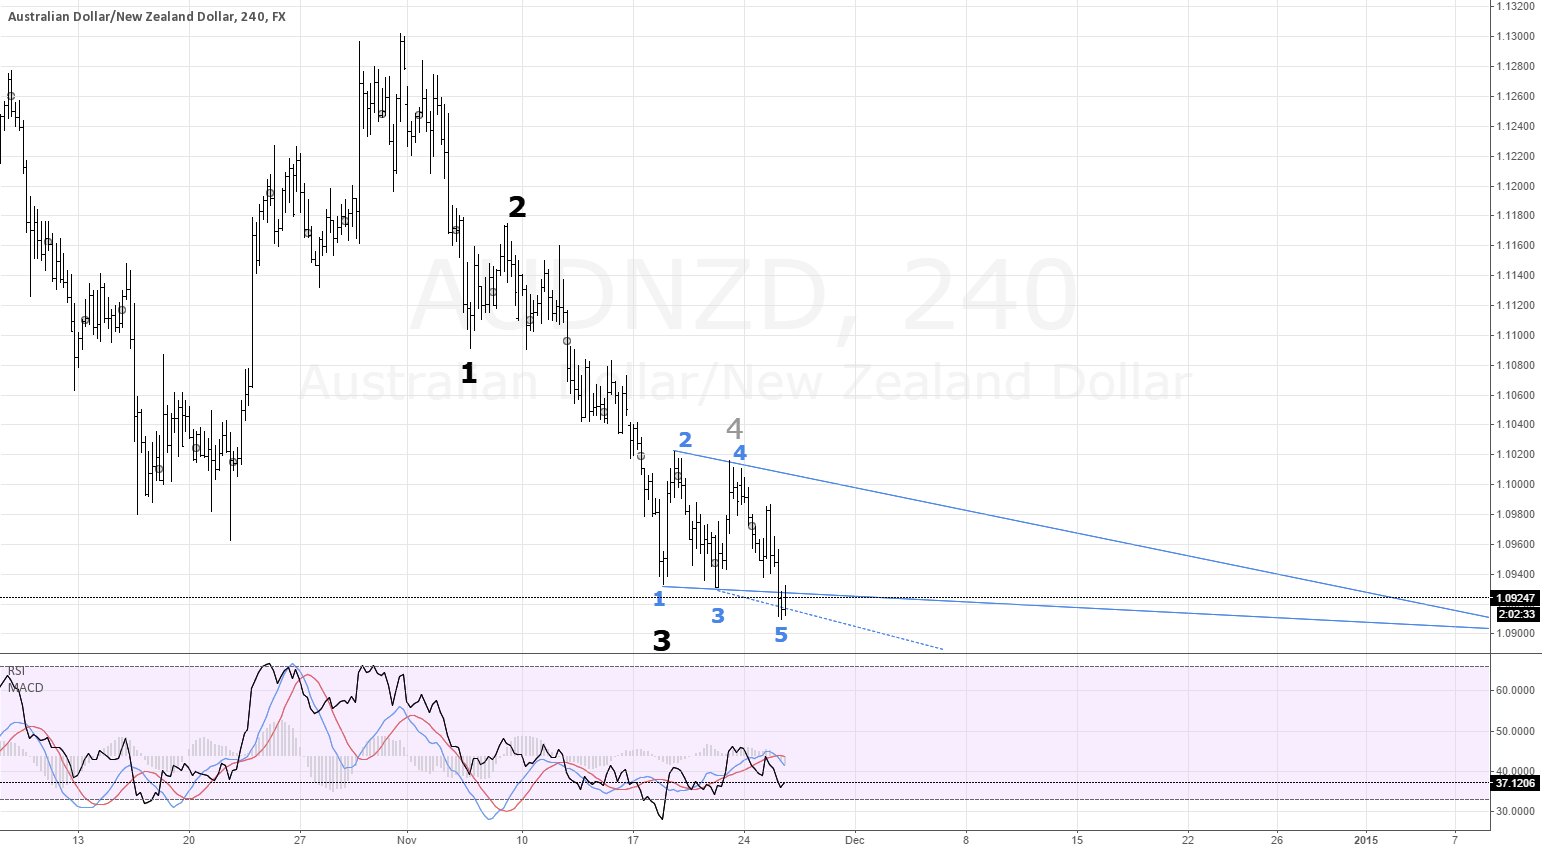 FX AUDNZD Wolfe Waves possible reversal. (My first chart)